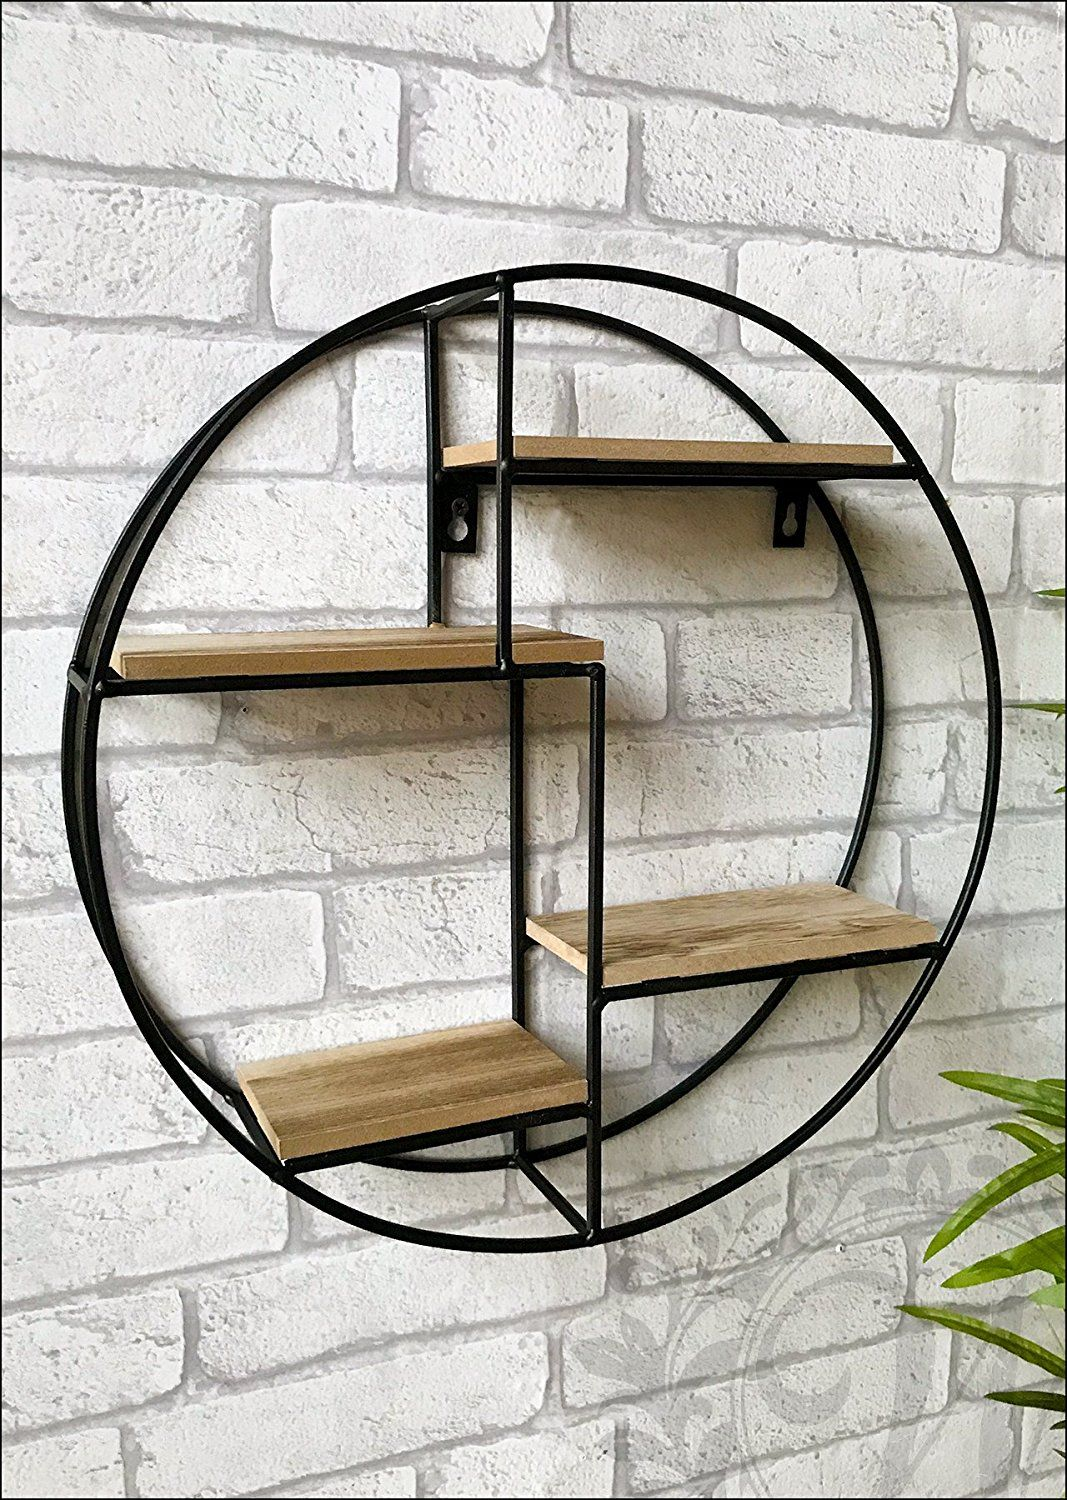 Wooden Round Wall Shelf Unique Home Decor Shabby Chic Circle Display Unit